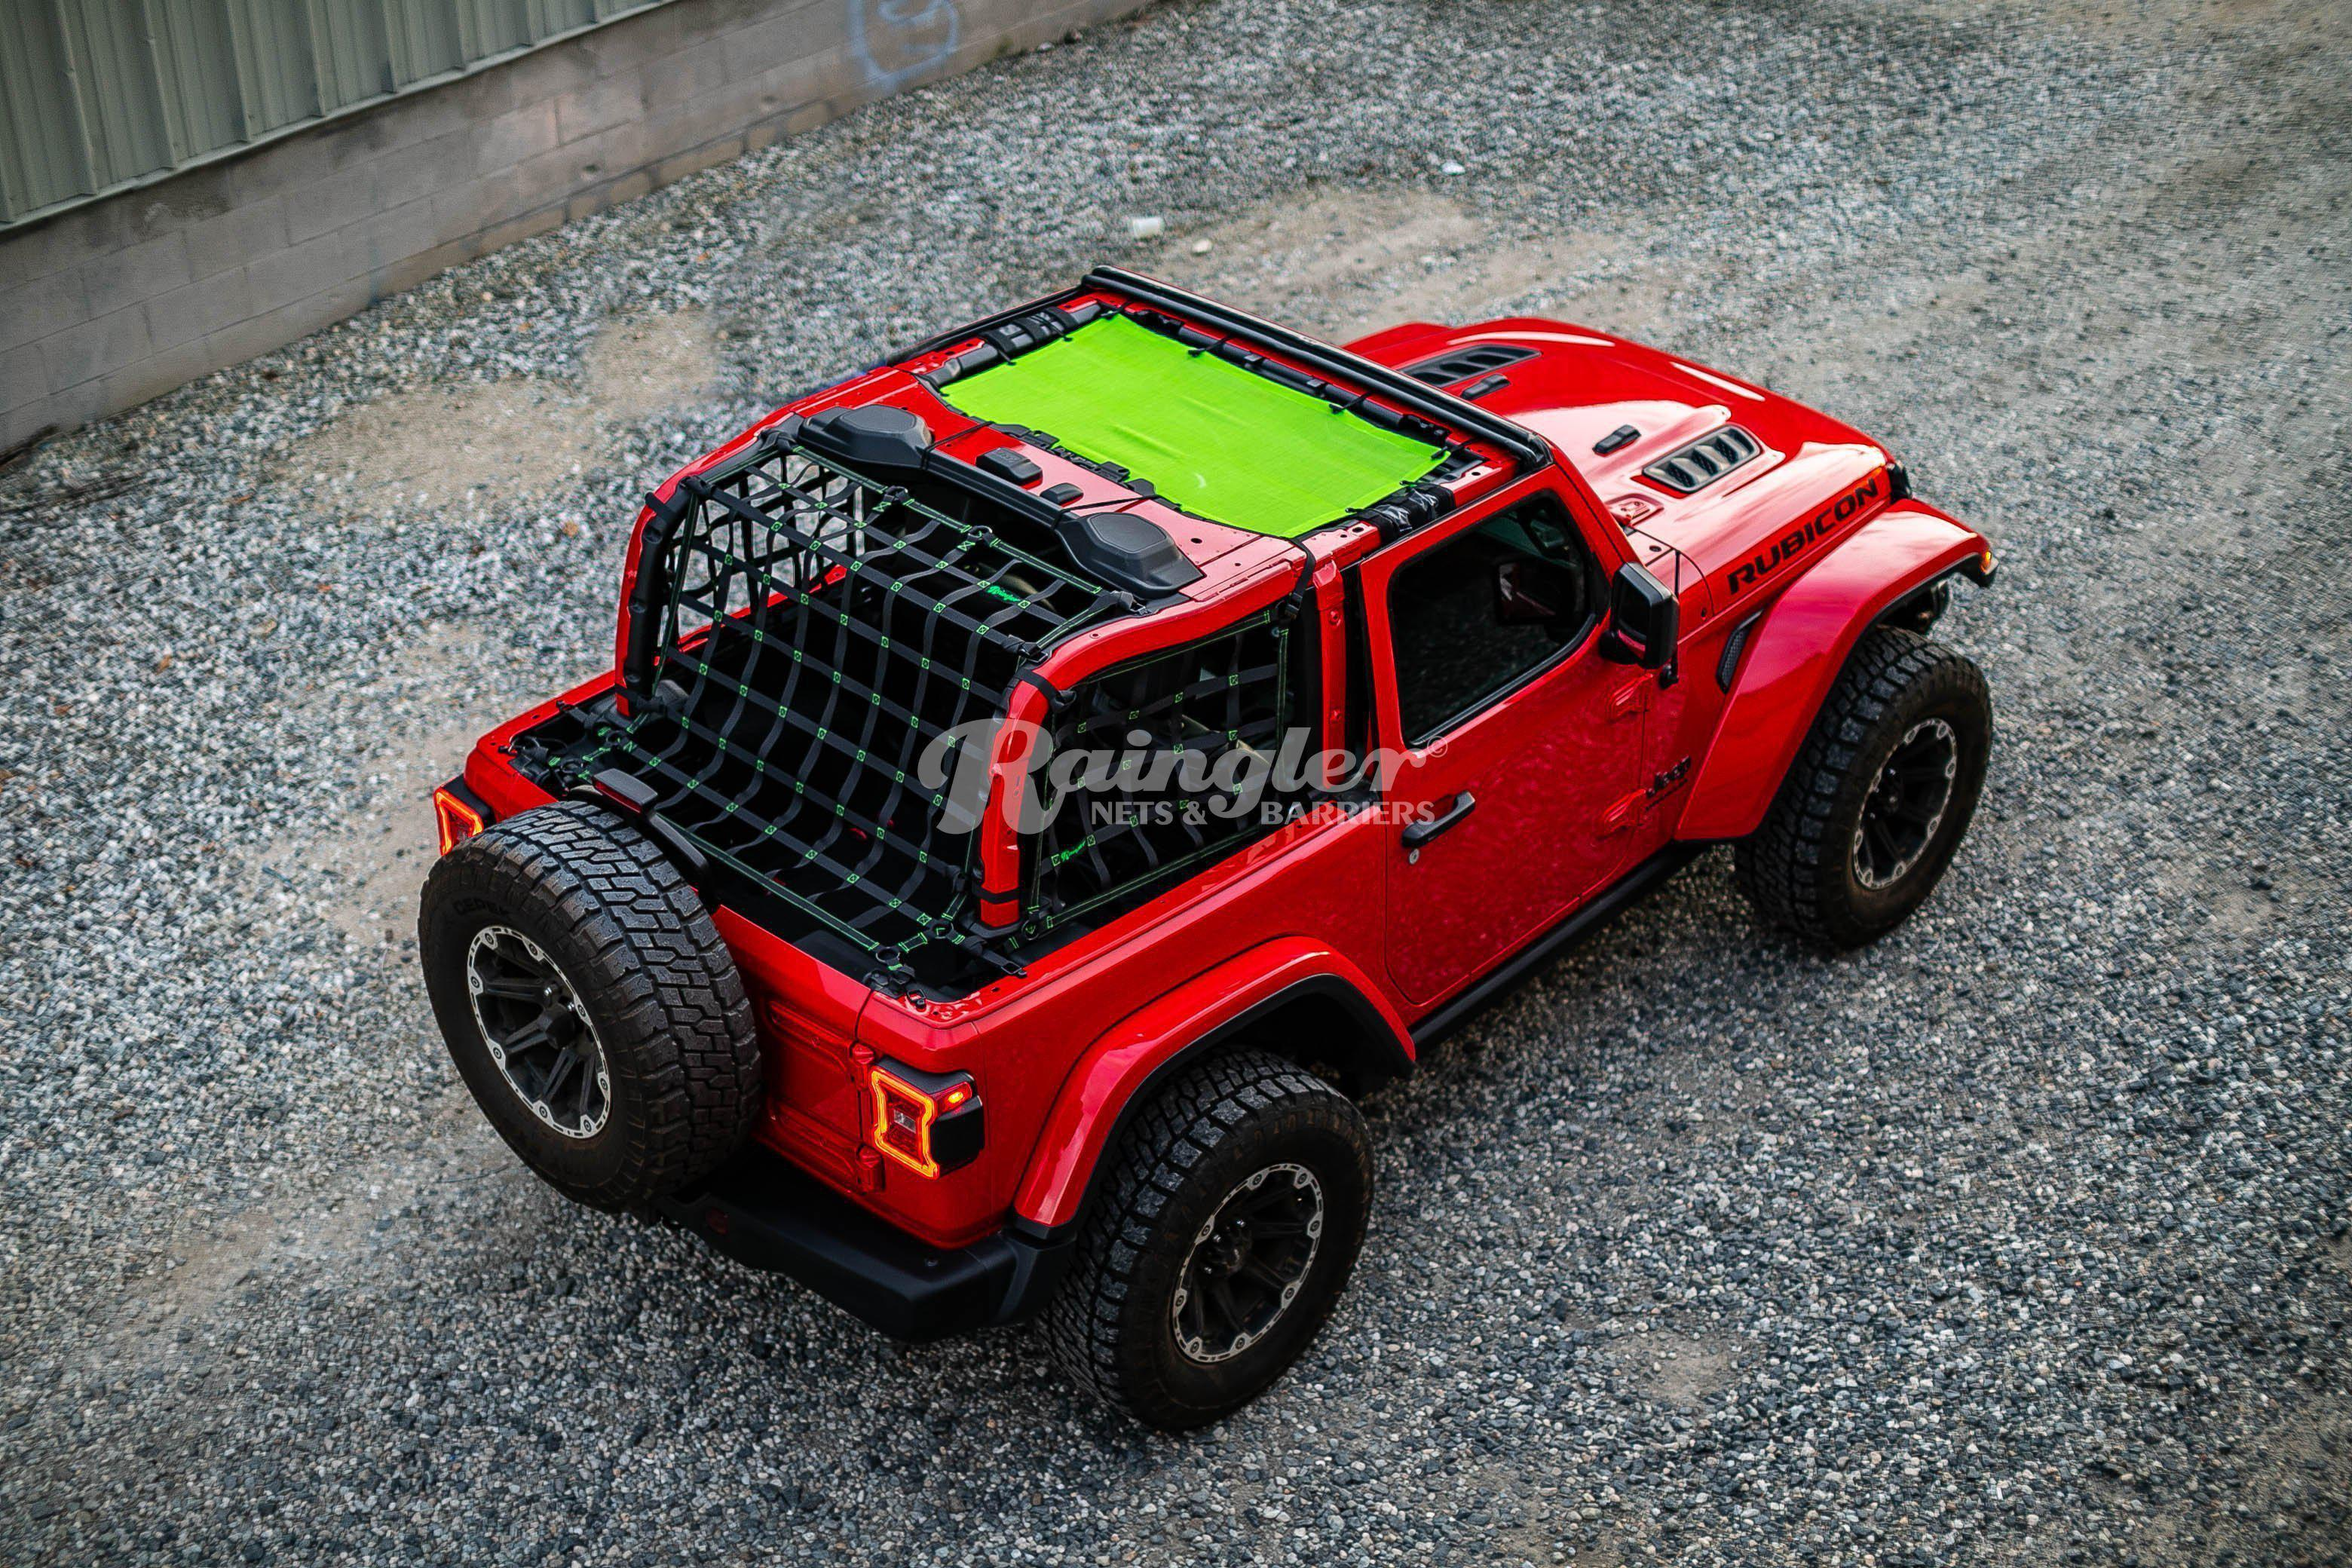 2007 2018 Jeep Wrangler Jk 2 Door 3 Piece Net System In 2020 New Jeep Wrangler Jeep Wrangler Wrangler Jl